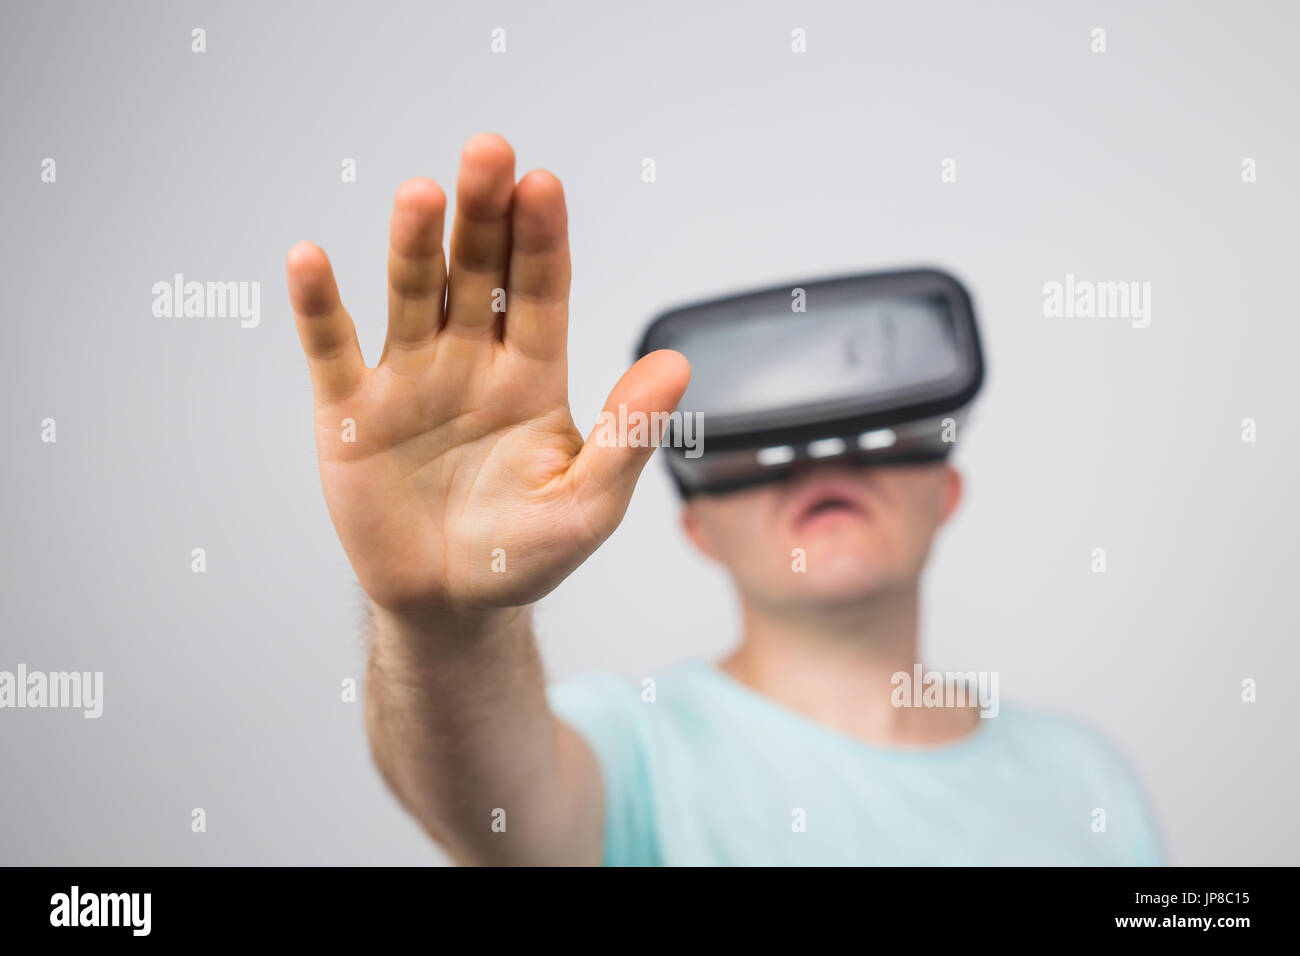 b5aaa5bbdd8e Excited young man using a VR headset and experiencing virtual reality  isolated on gray background